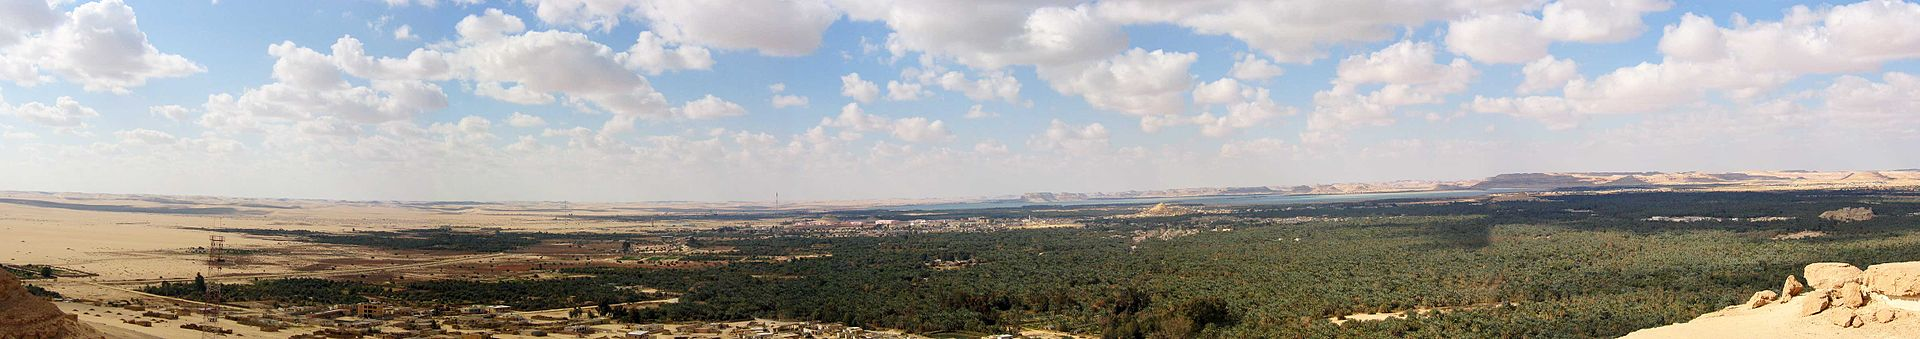 A panorama of the Siwah Oasis and surrounding desert